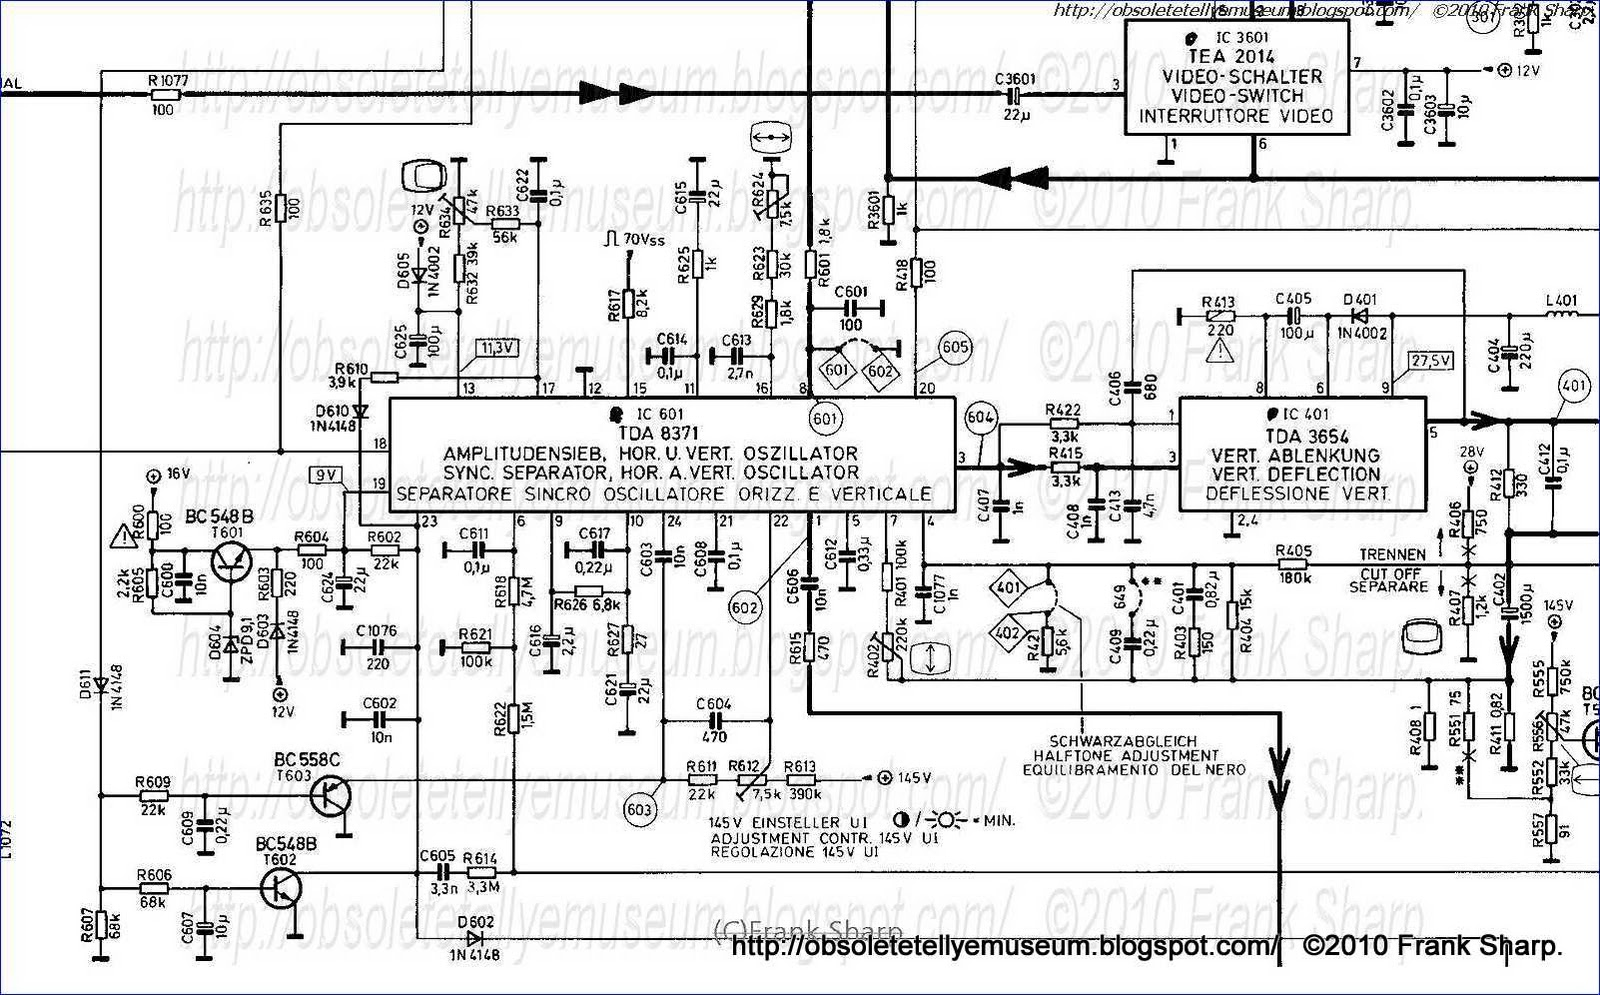 2011-freightliner-cascadia-insturment-cluster-wiring-diagram-3 Raven Wiring Diagram on control cable wiring, pin connector, harness diagram, monitor liquid nitrogen, nh3 wire diagram, sprayer flow control, sprayer pump setup, master switch, anhydrous ammonia, radar cable power connection, console cable, monitor for sale, 16 pin harness diagram, plug deere gps,